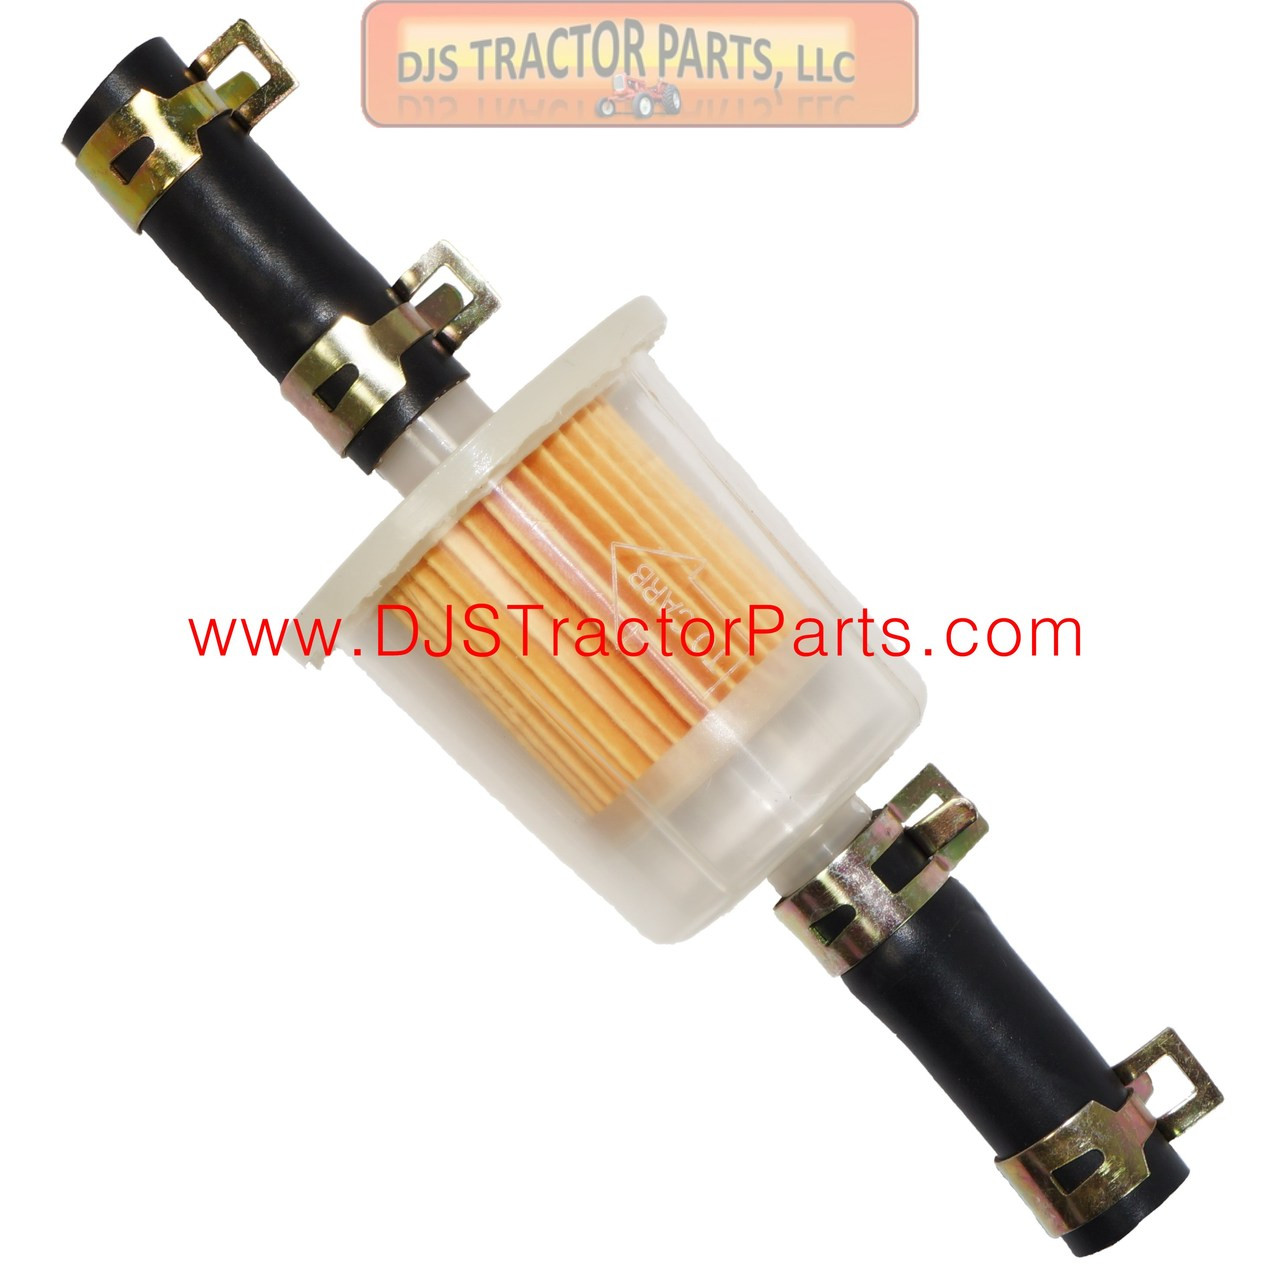 WIX Brand IN-LINE FUEL FILTER - AB-490D - DJS Tractor Parts LLC   Wix 3 8 Line Fuel Filter      DJS Tractor Parts